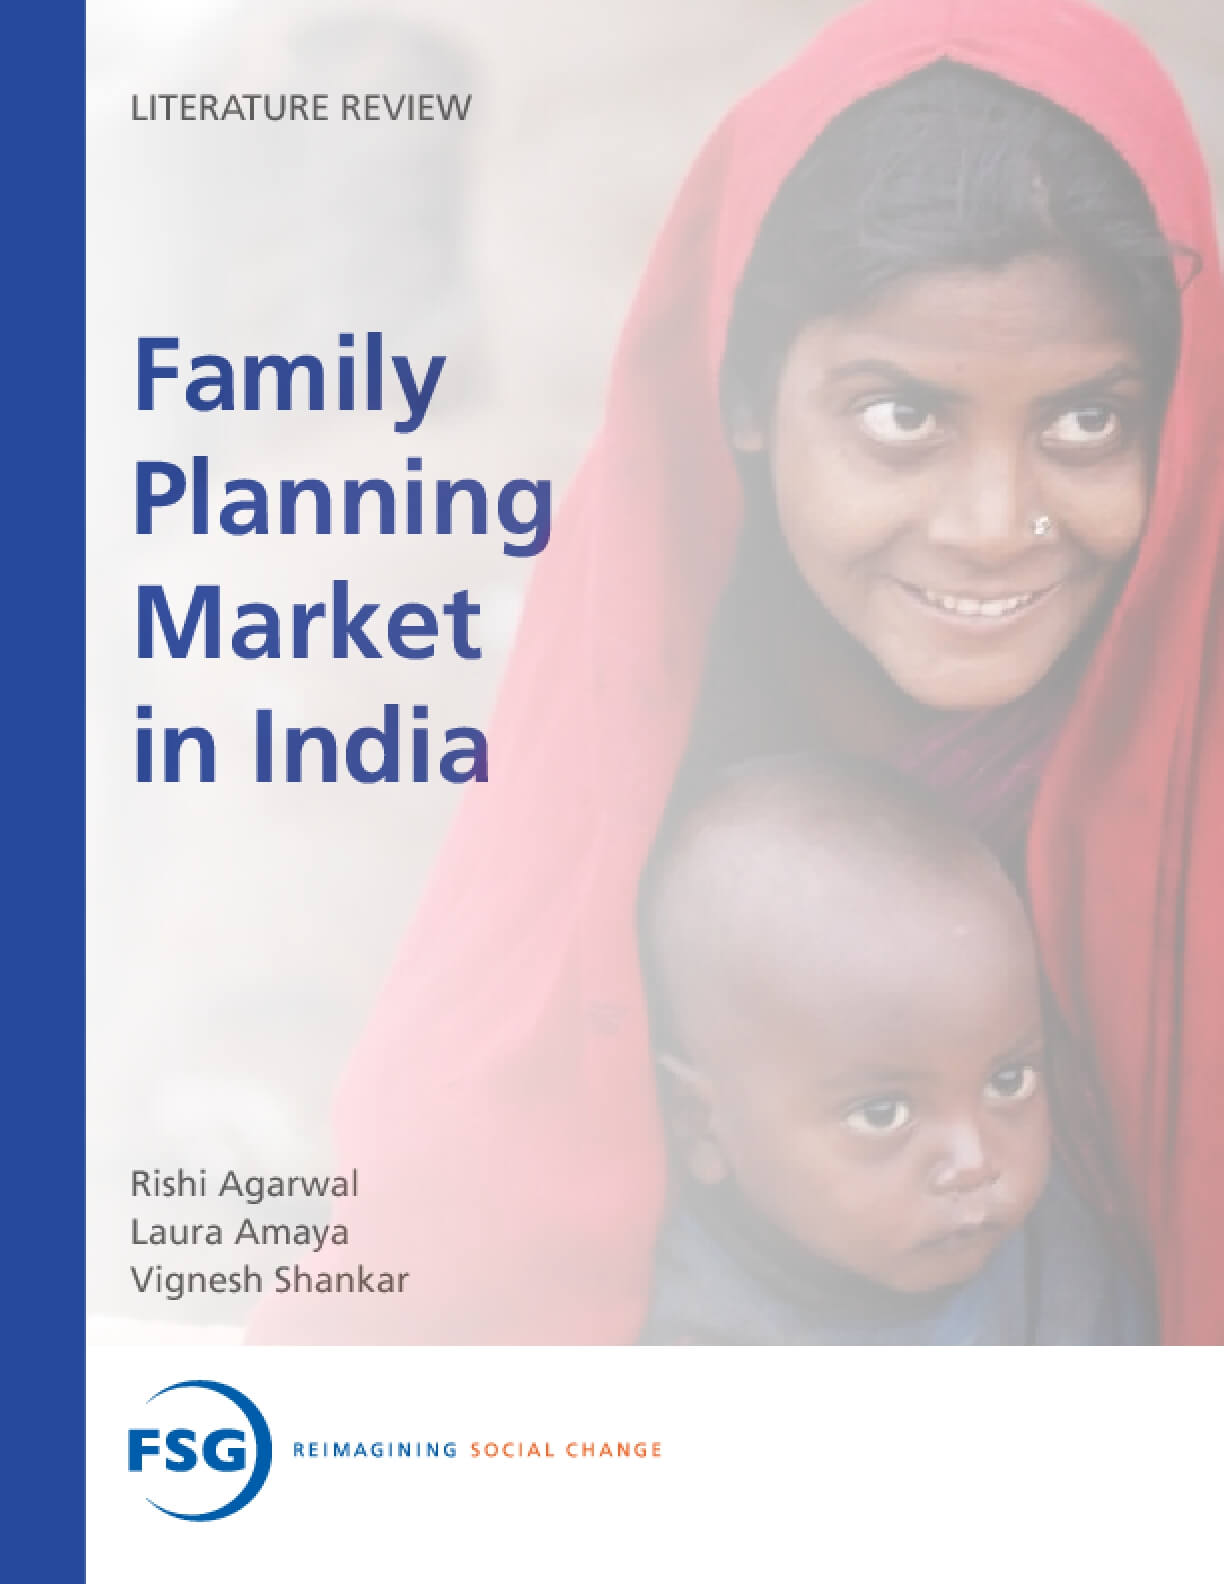 Family Planning Market in India